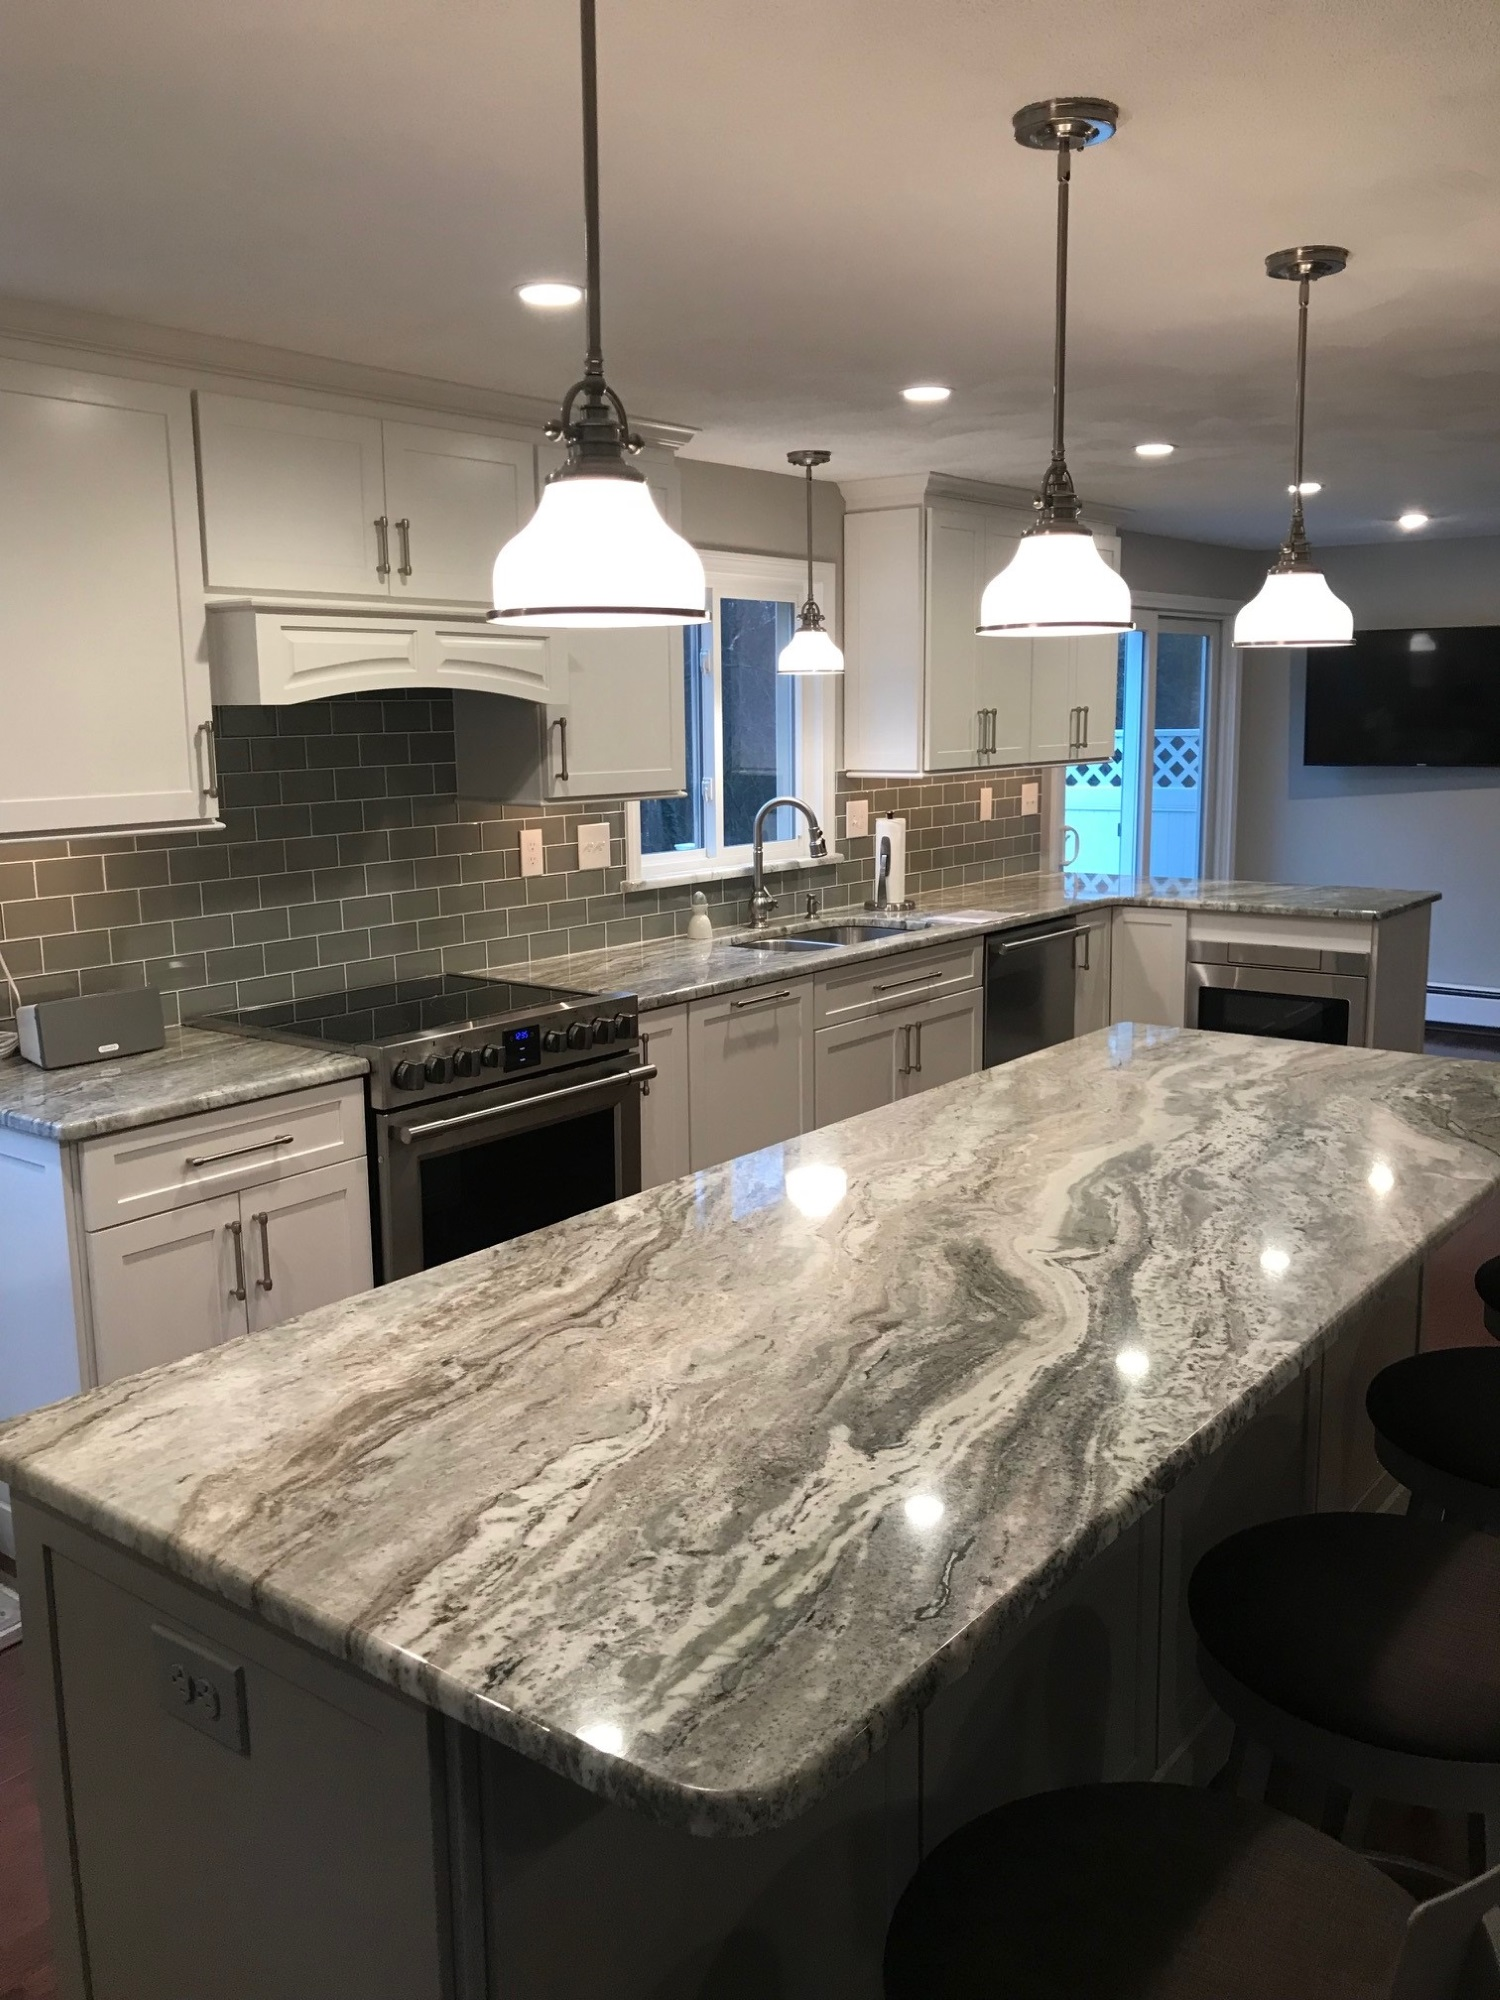 North attleboro ma kitchen countertop center of new england for Patete kitchen bath design center reviews